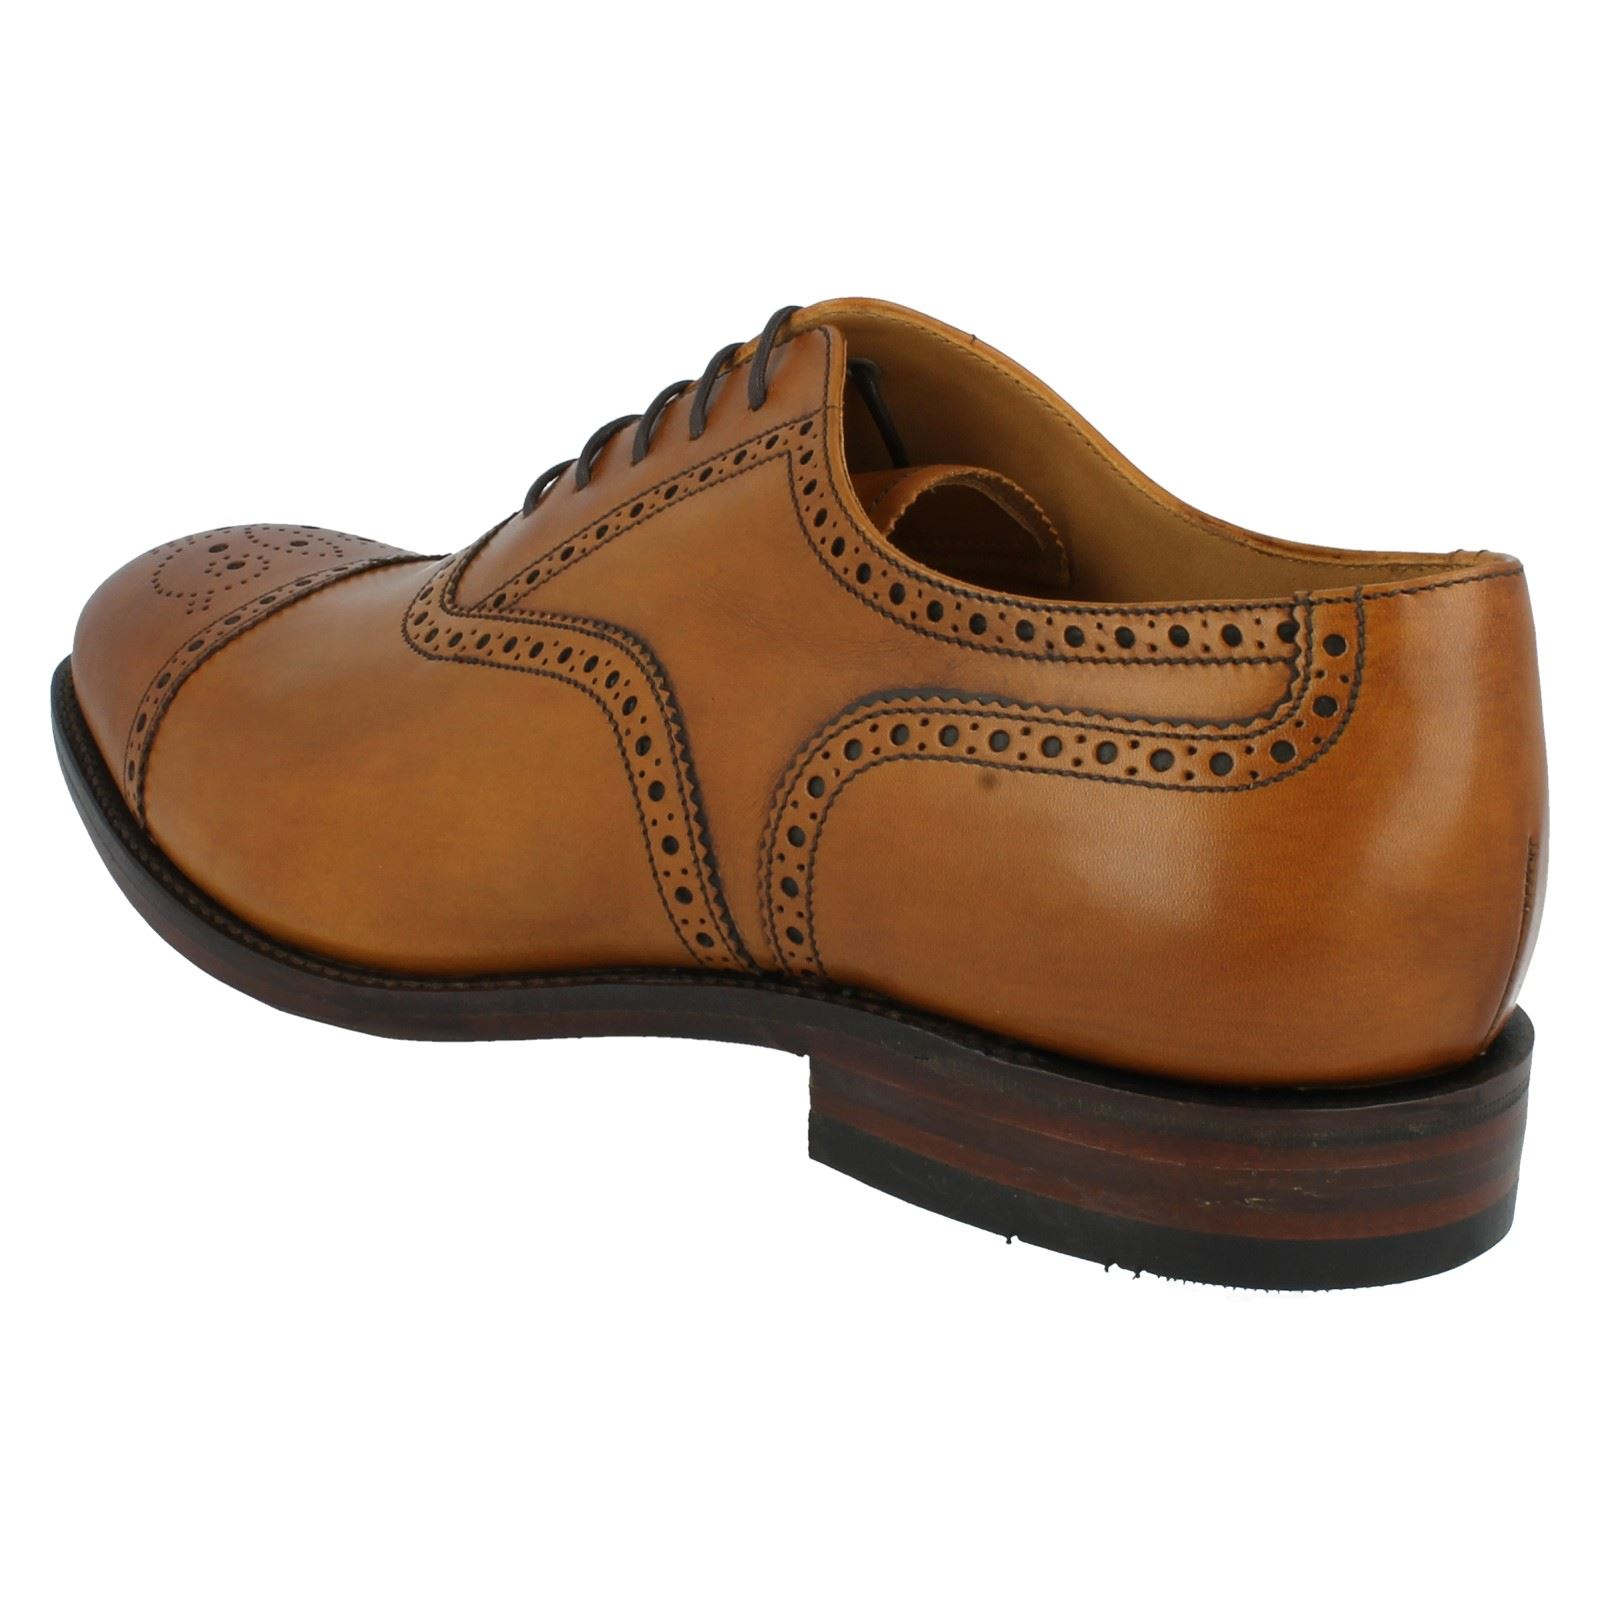 Brogue Tweed Tan 2 Shoes Leather Loake Mens Formal Fitting G Fvxt7Cw